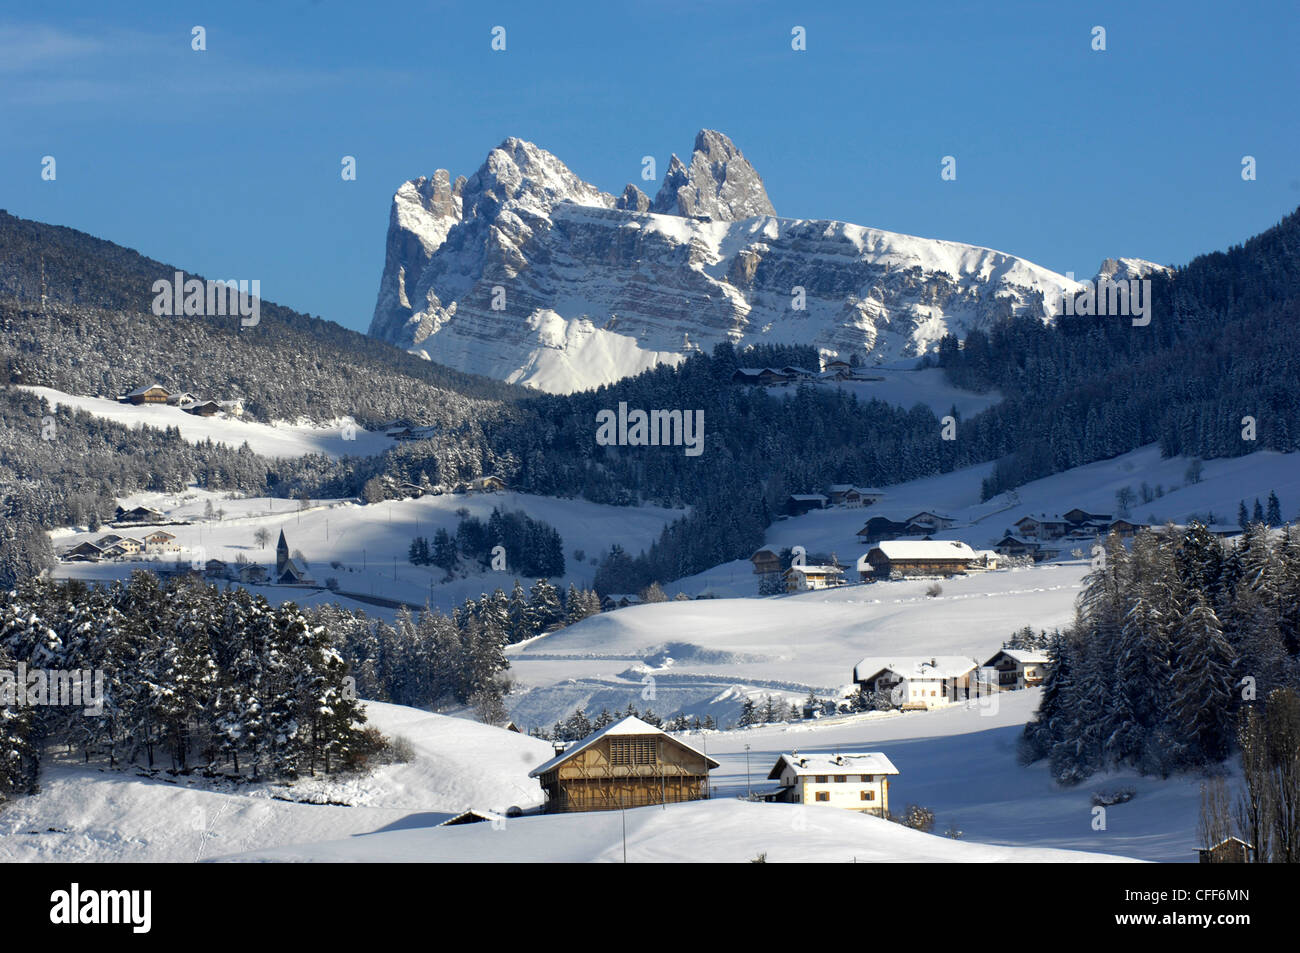 Farmhouses in snowy landscape in front of Geisler mountain range, Kastelruth, Valle Isarco, Alto Adige, South Tyrol, - Stock Image